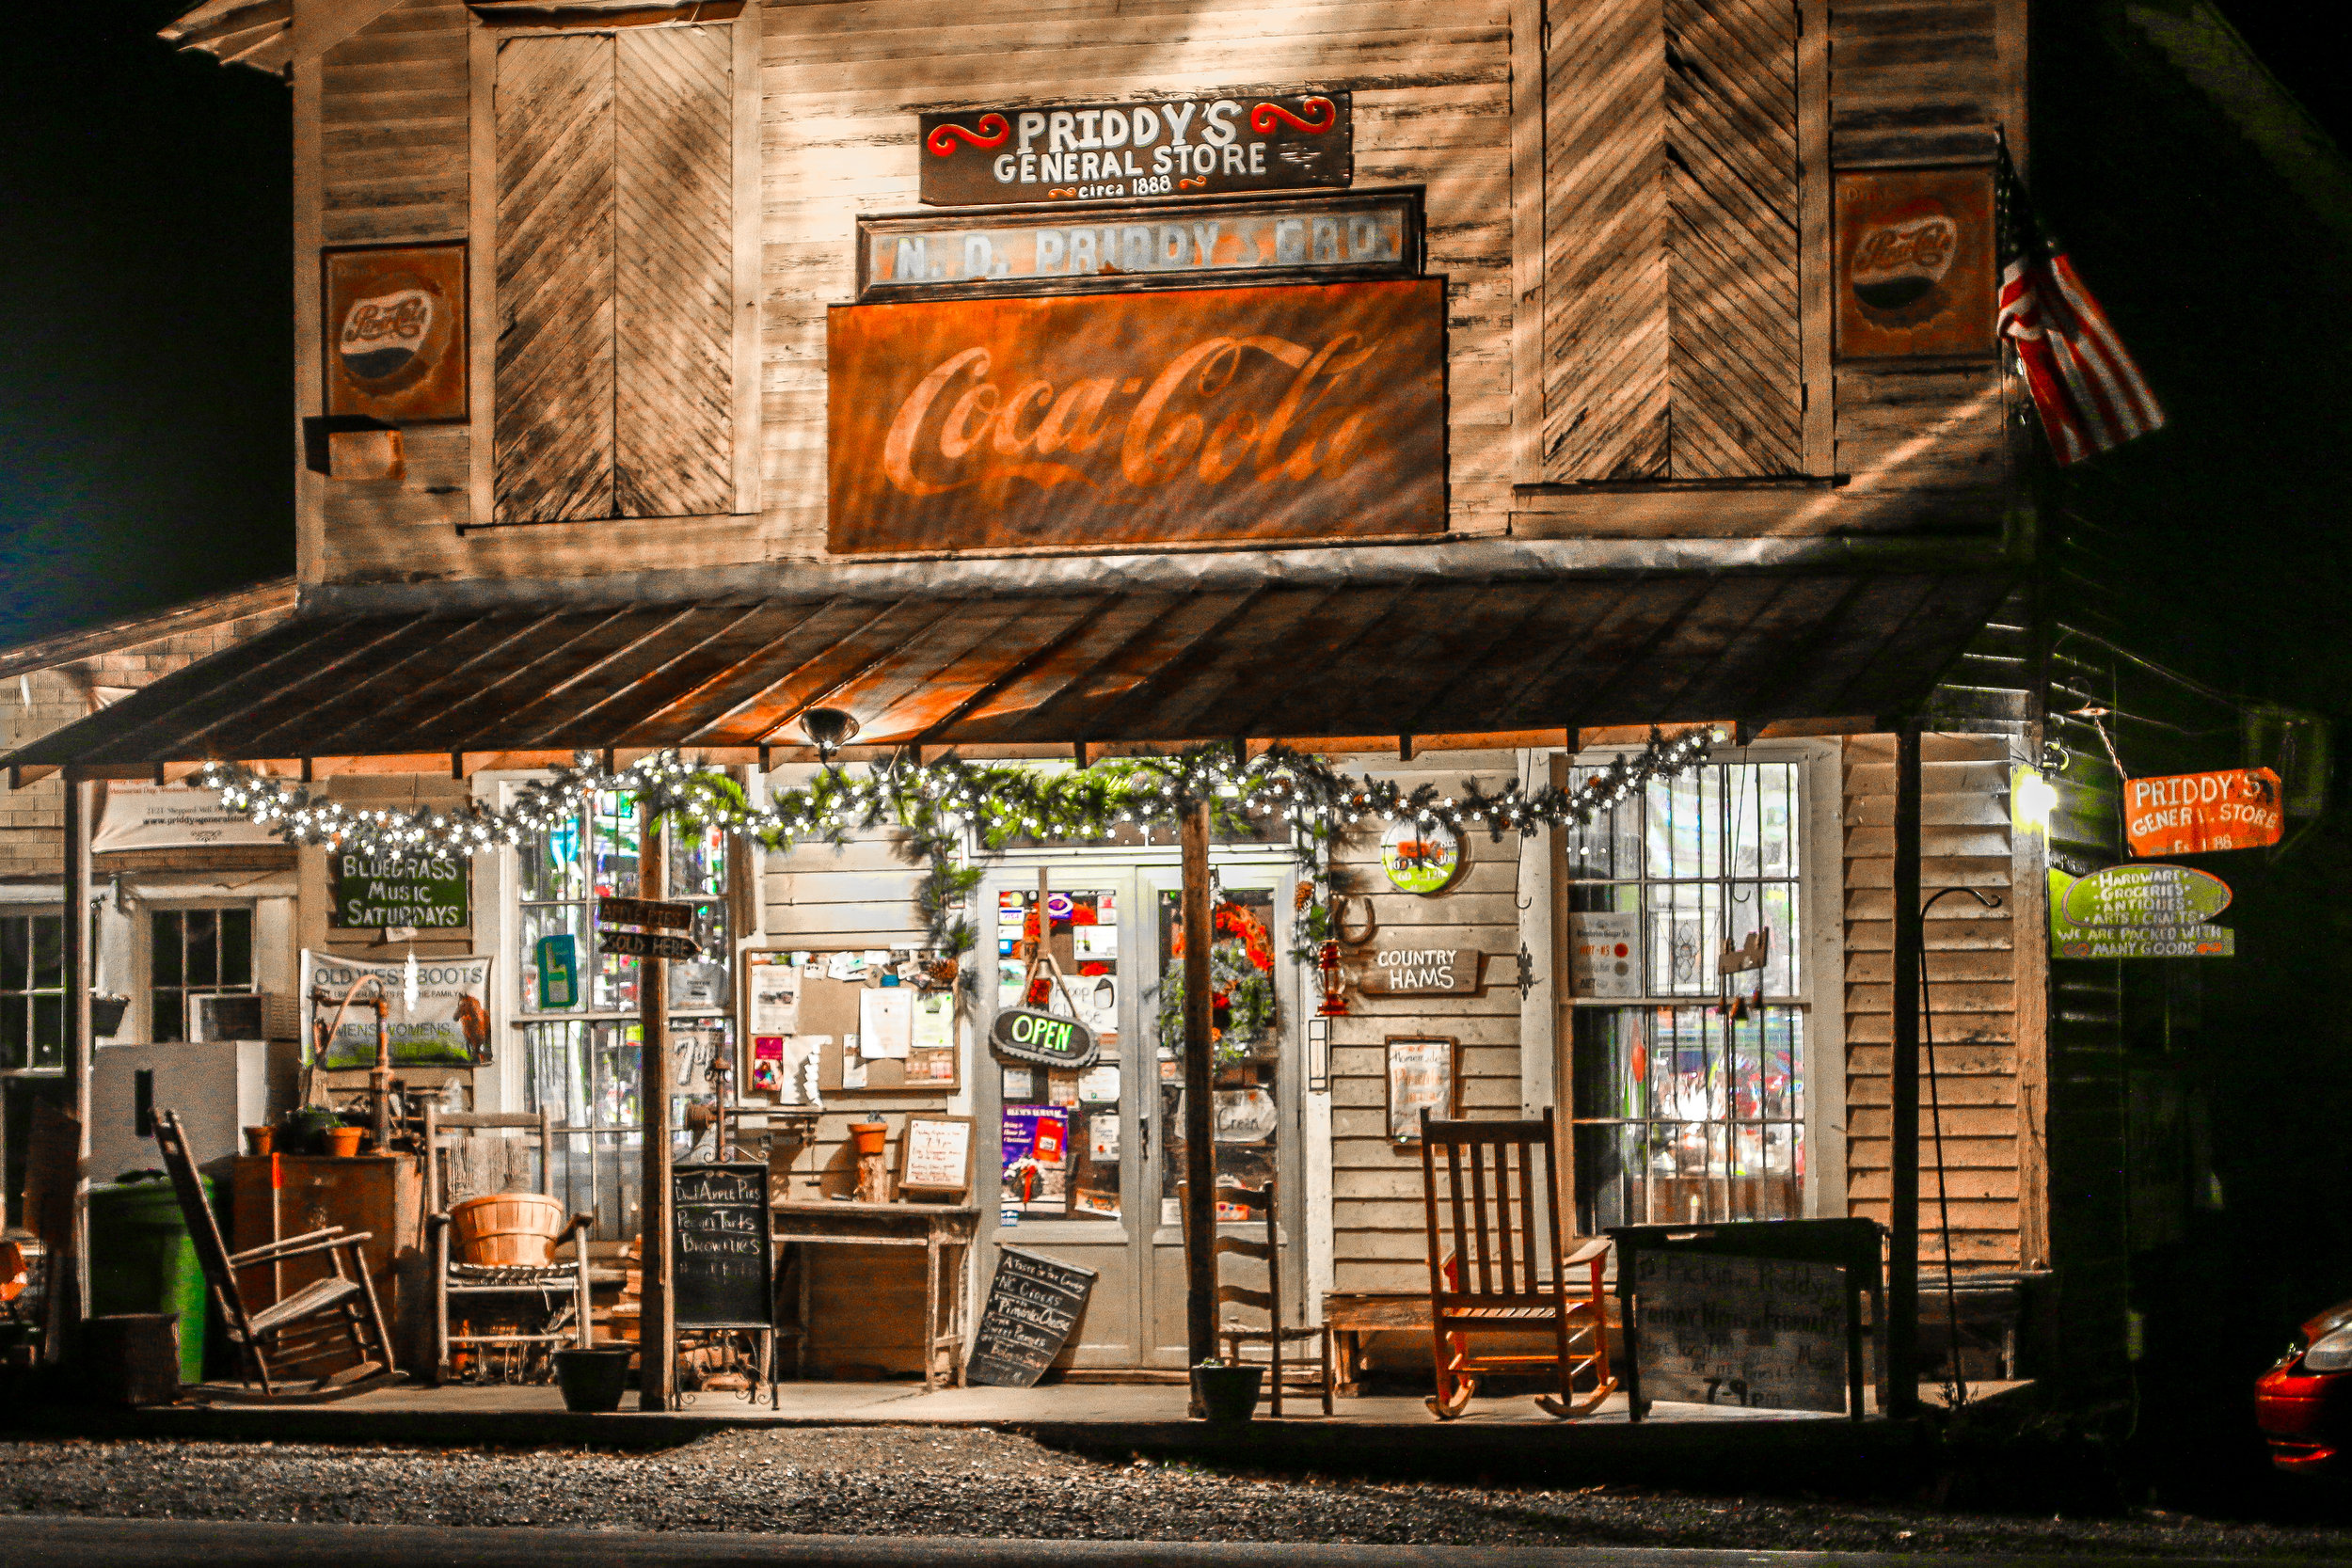 Priddy's General Store